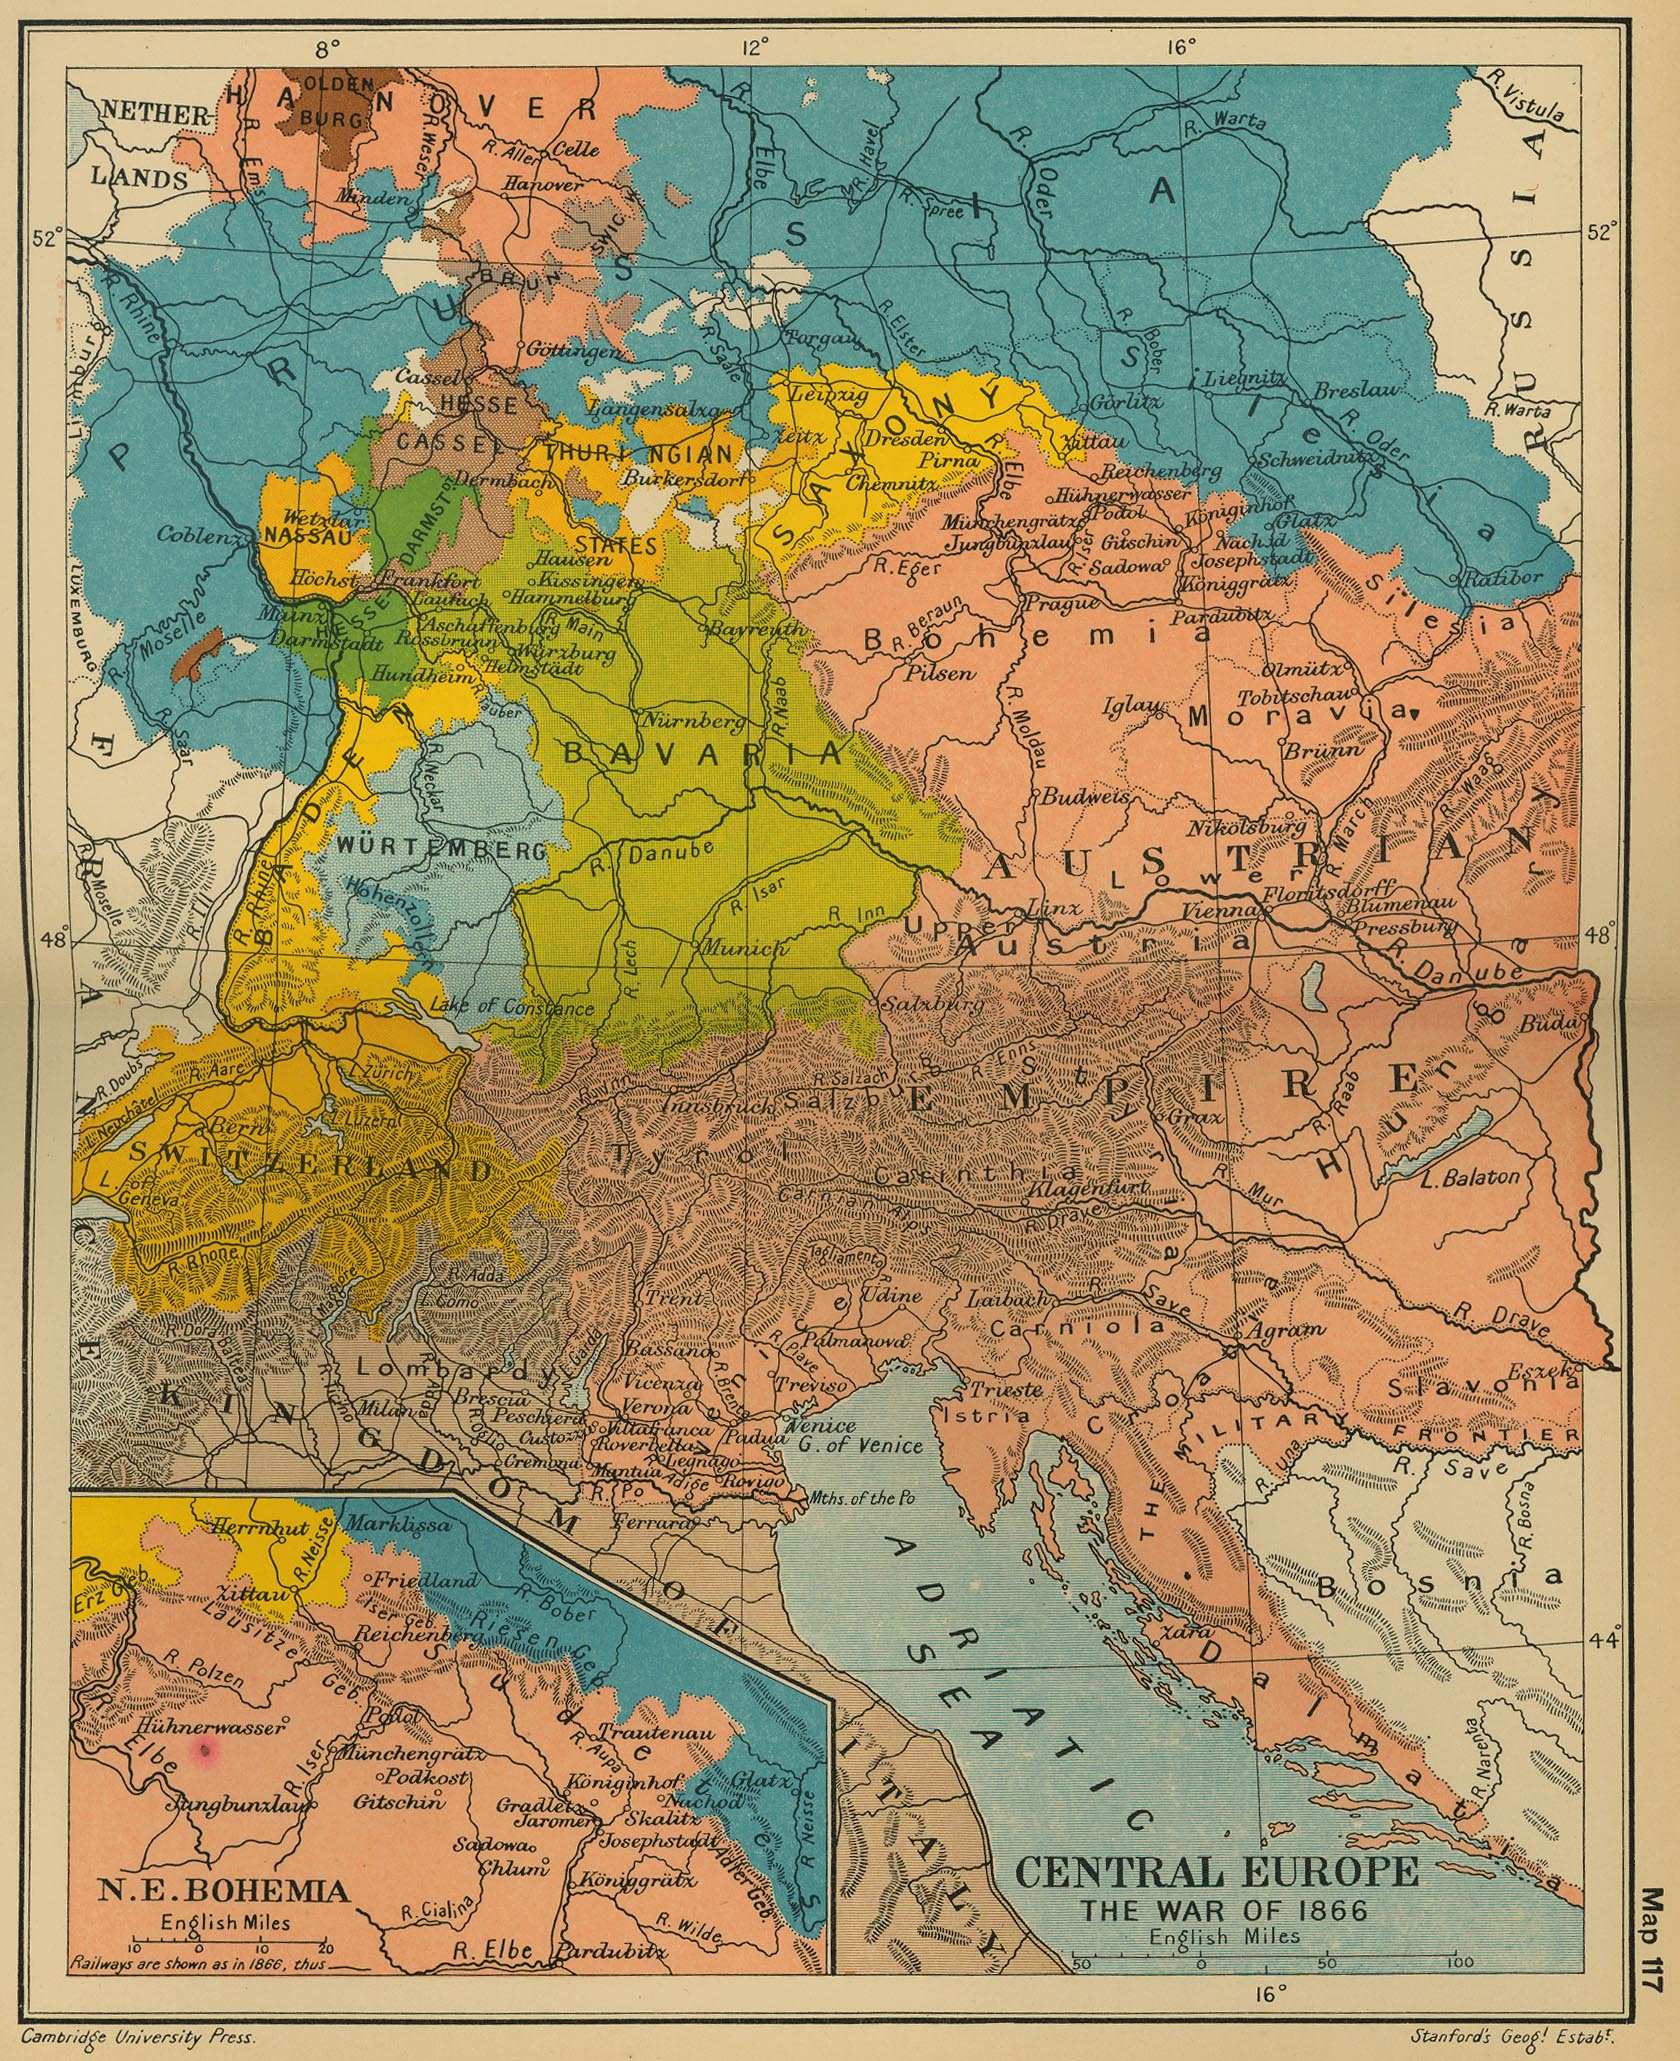 Map of Central Europe 1866